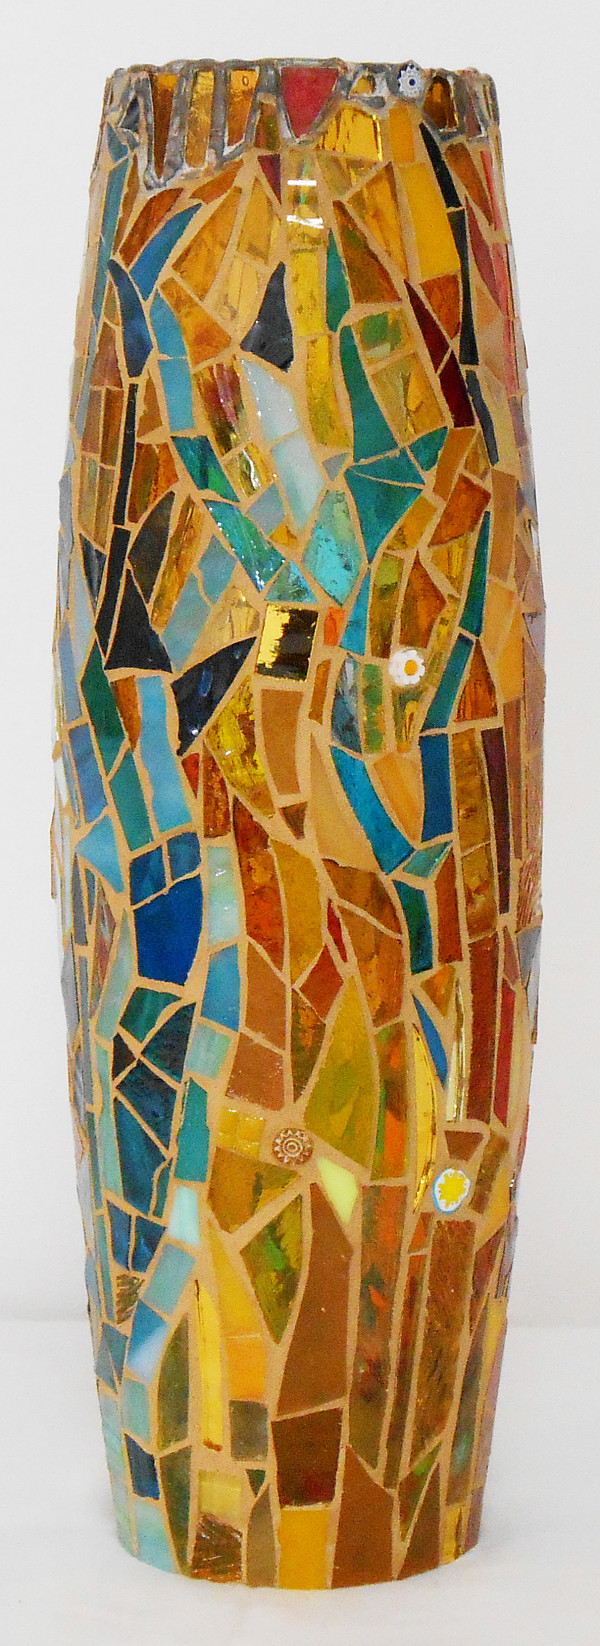 Transformation (vase) by Andrea L Edmundson